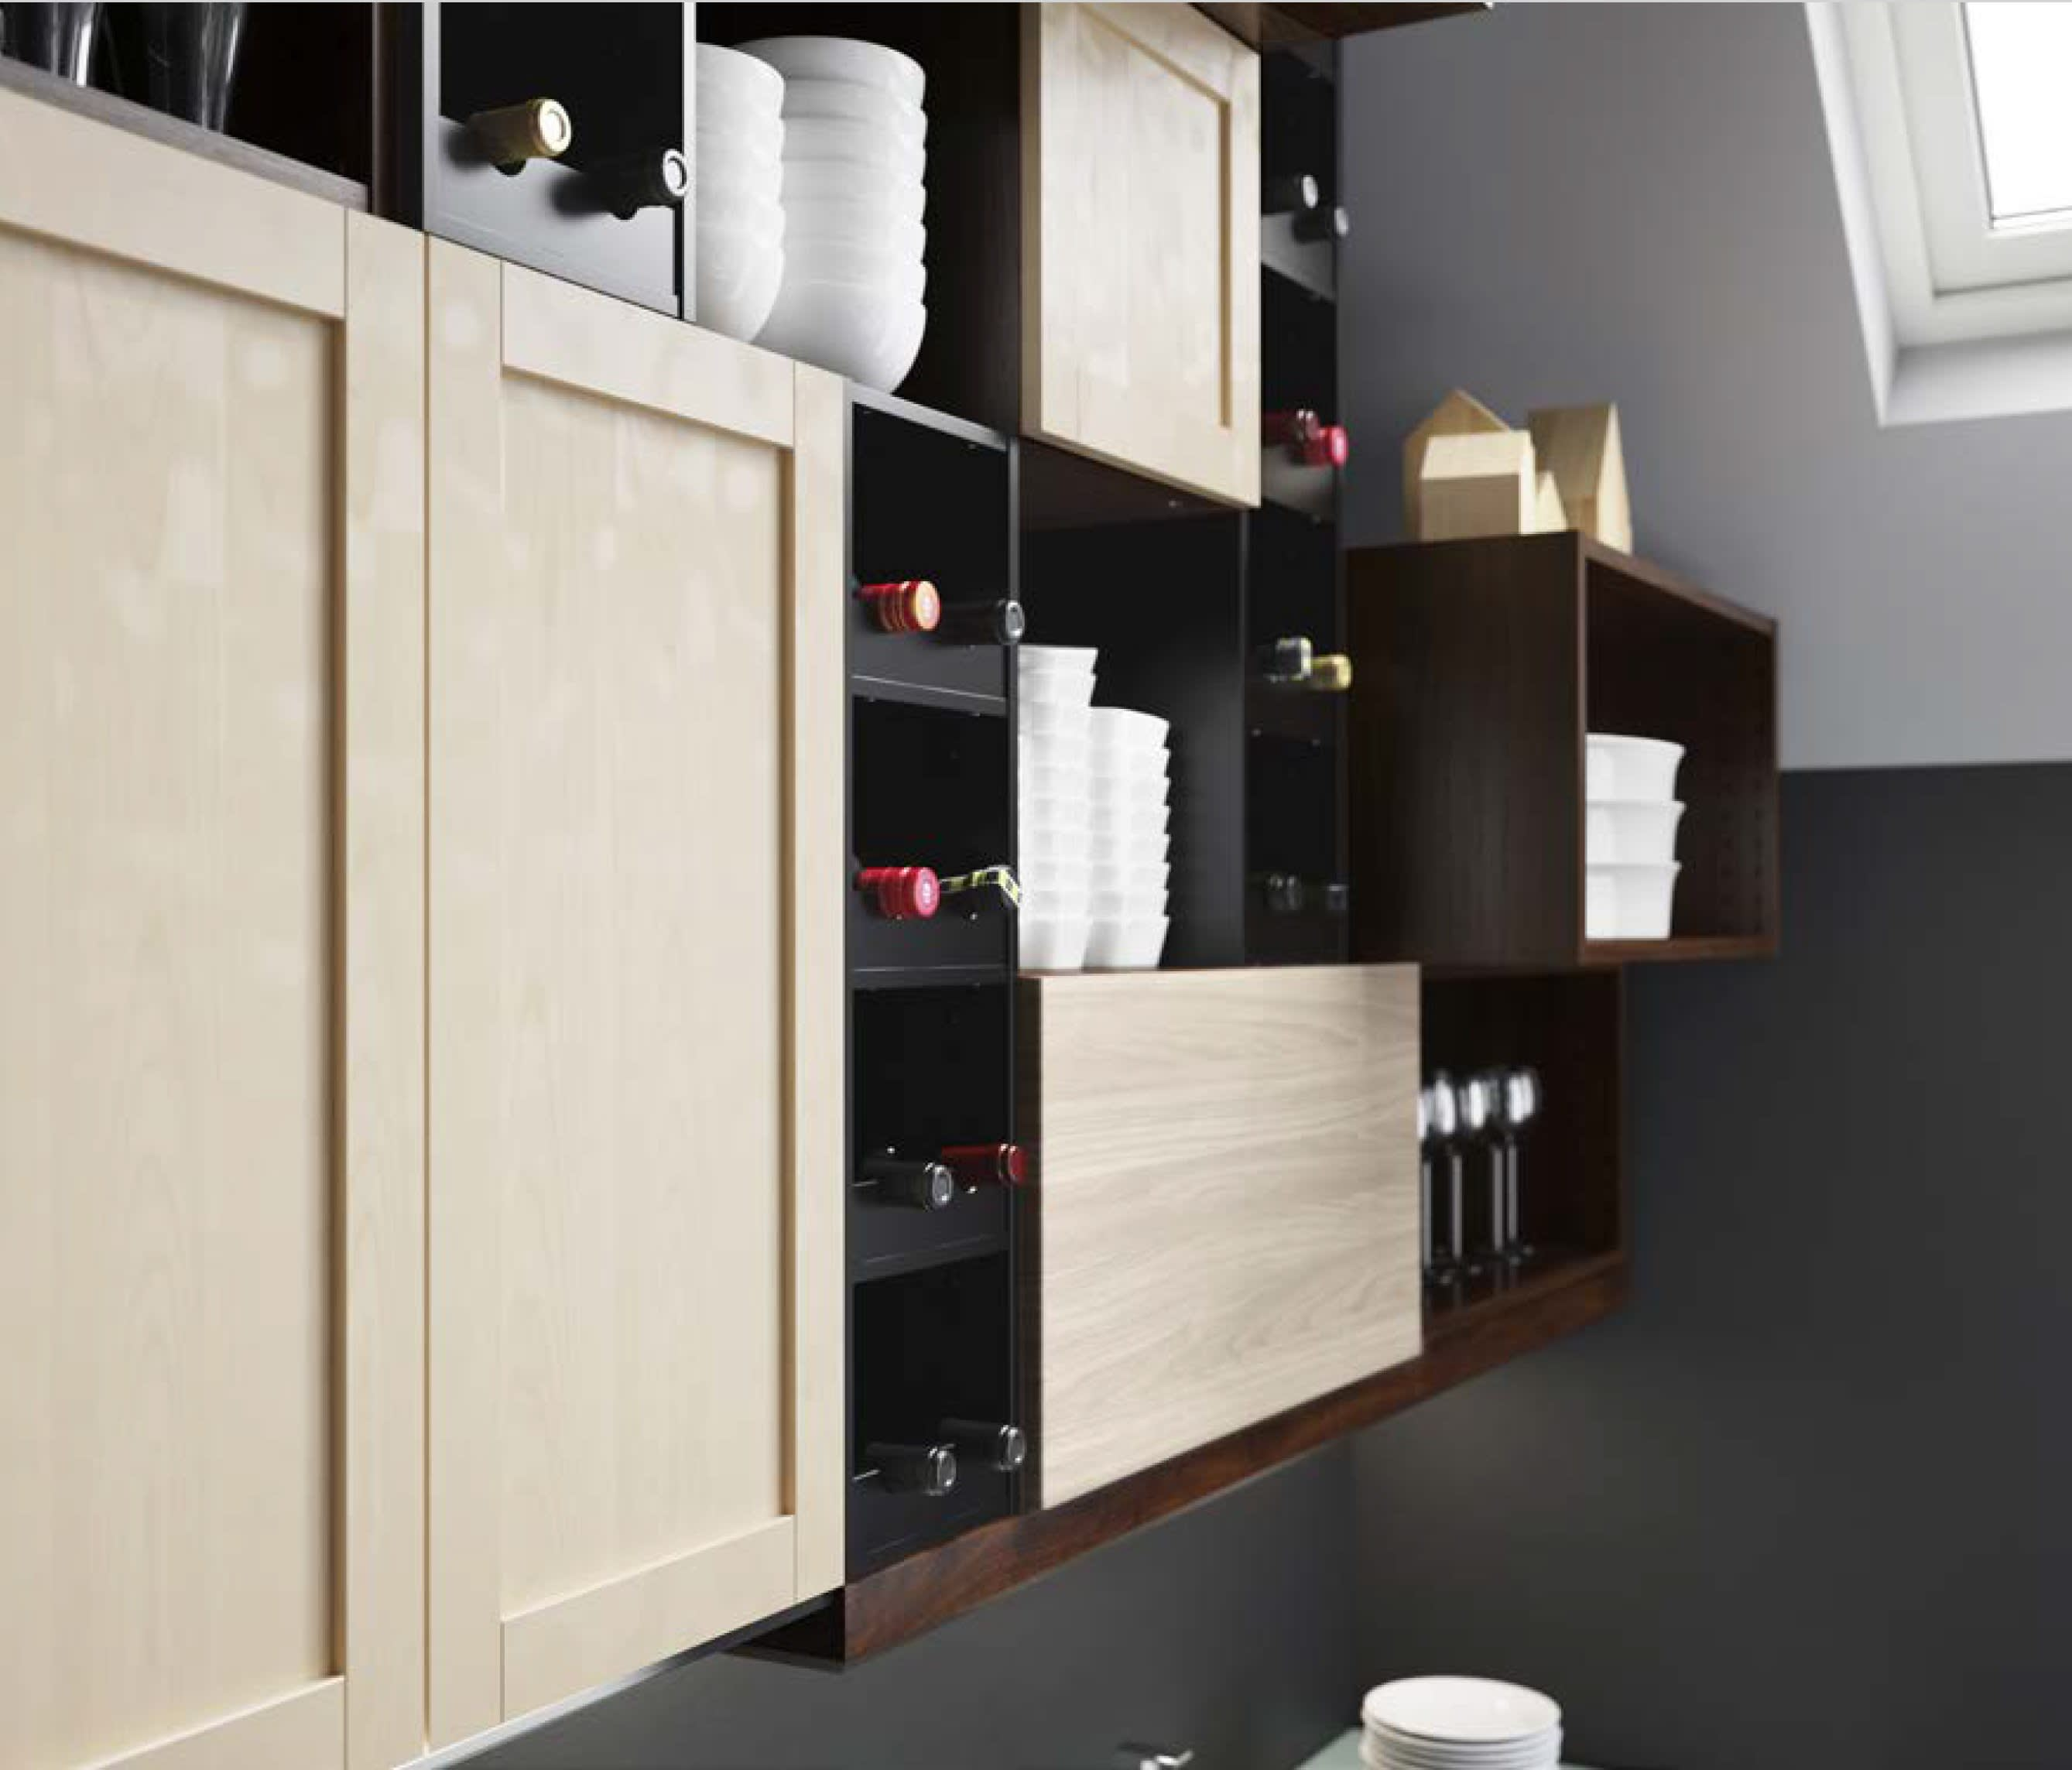 Ikea Kitchen Cabnets: IKEA's New SEKTION Cabinets: Sizes, Prices & Photos!